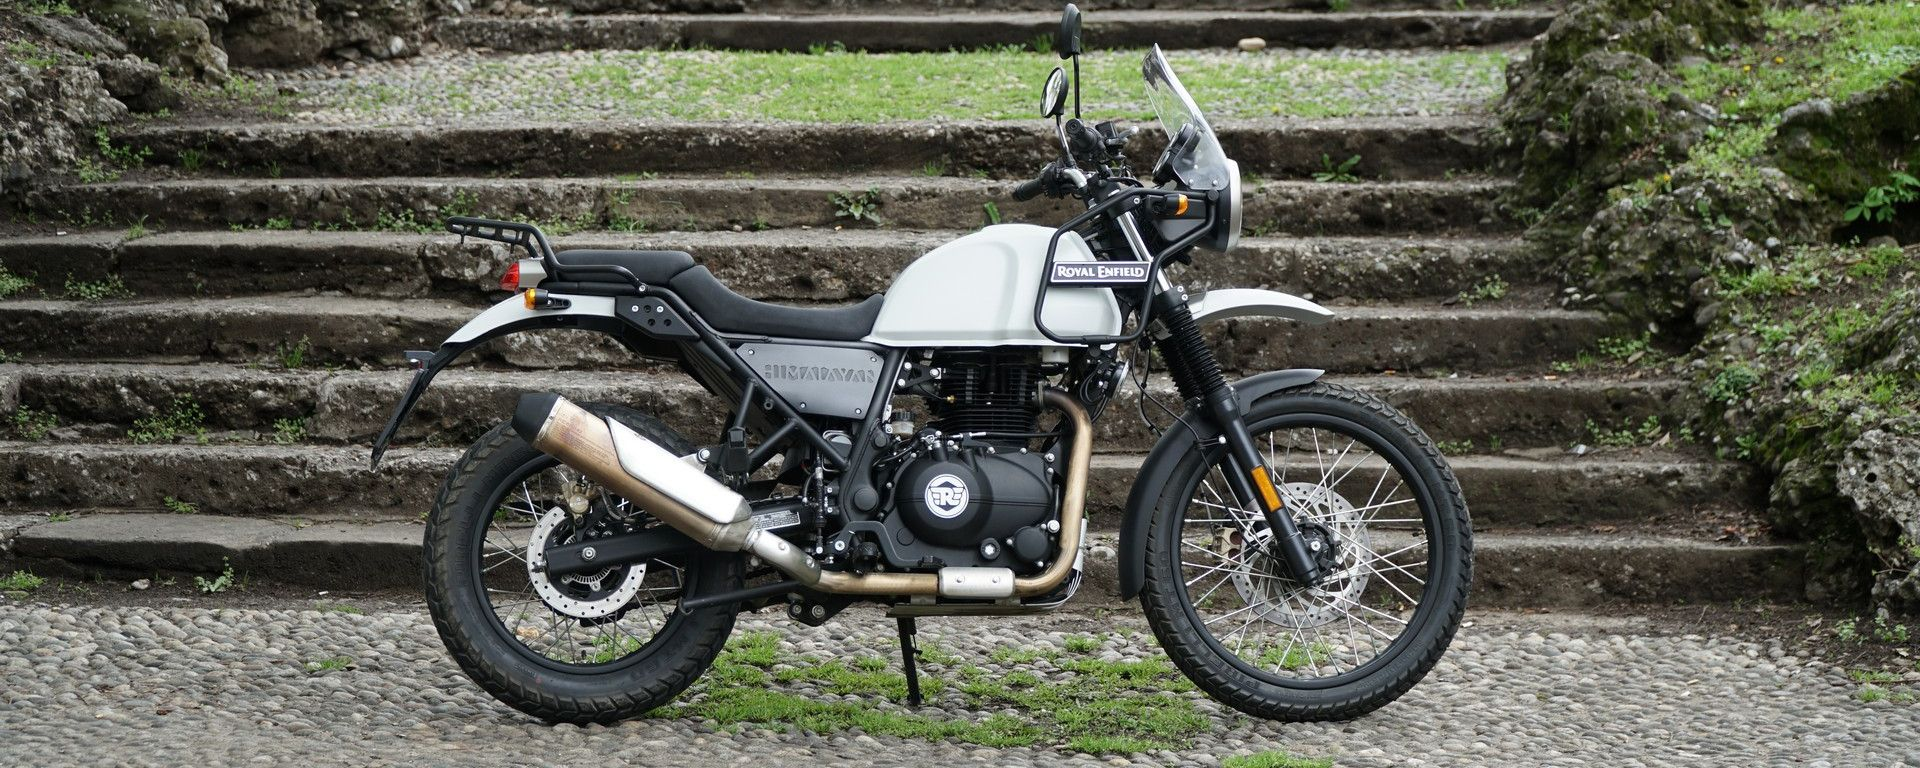 Royal Enfield Himalayan: vista laterale